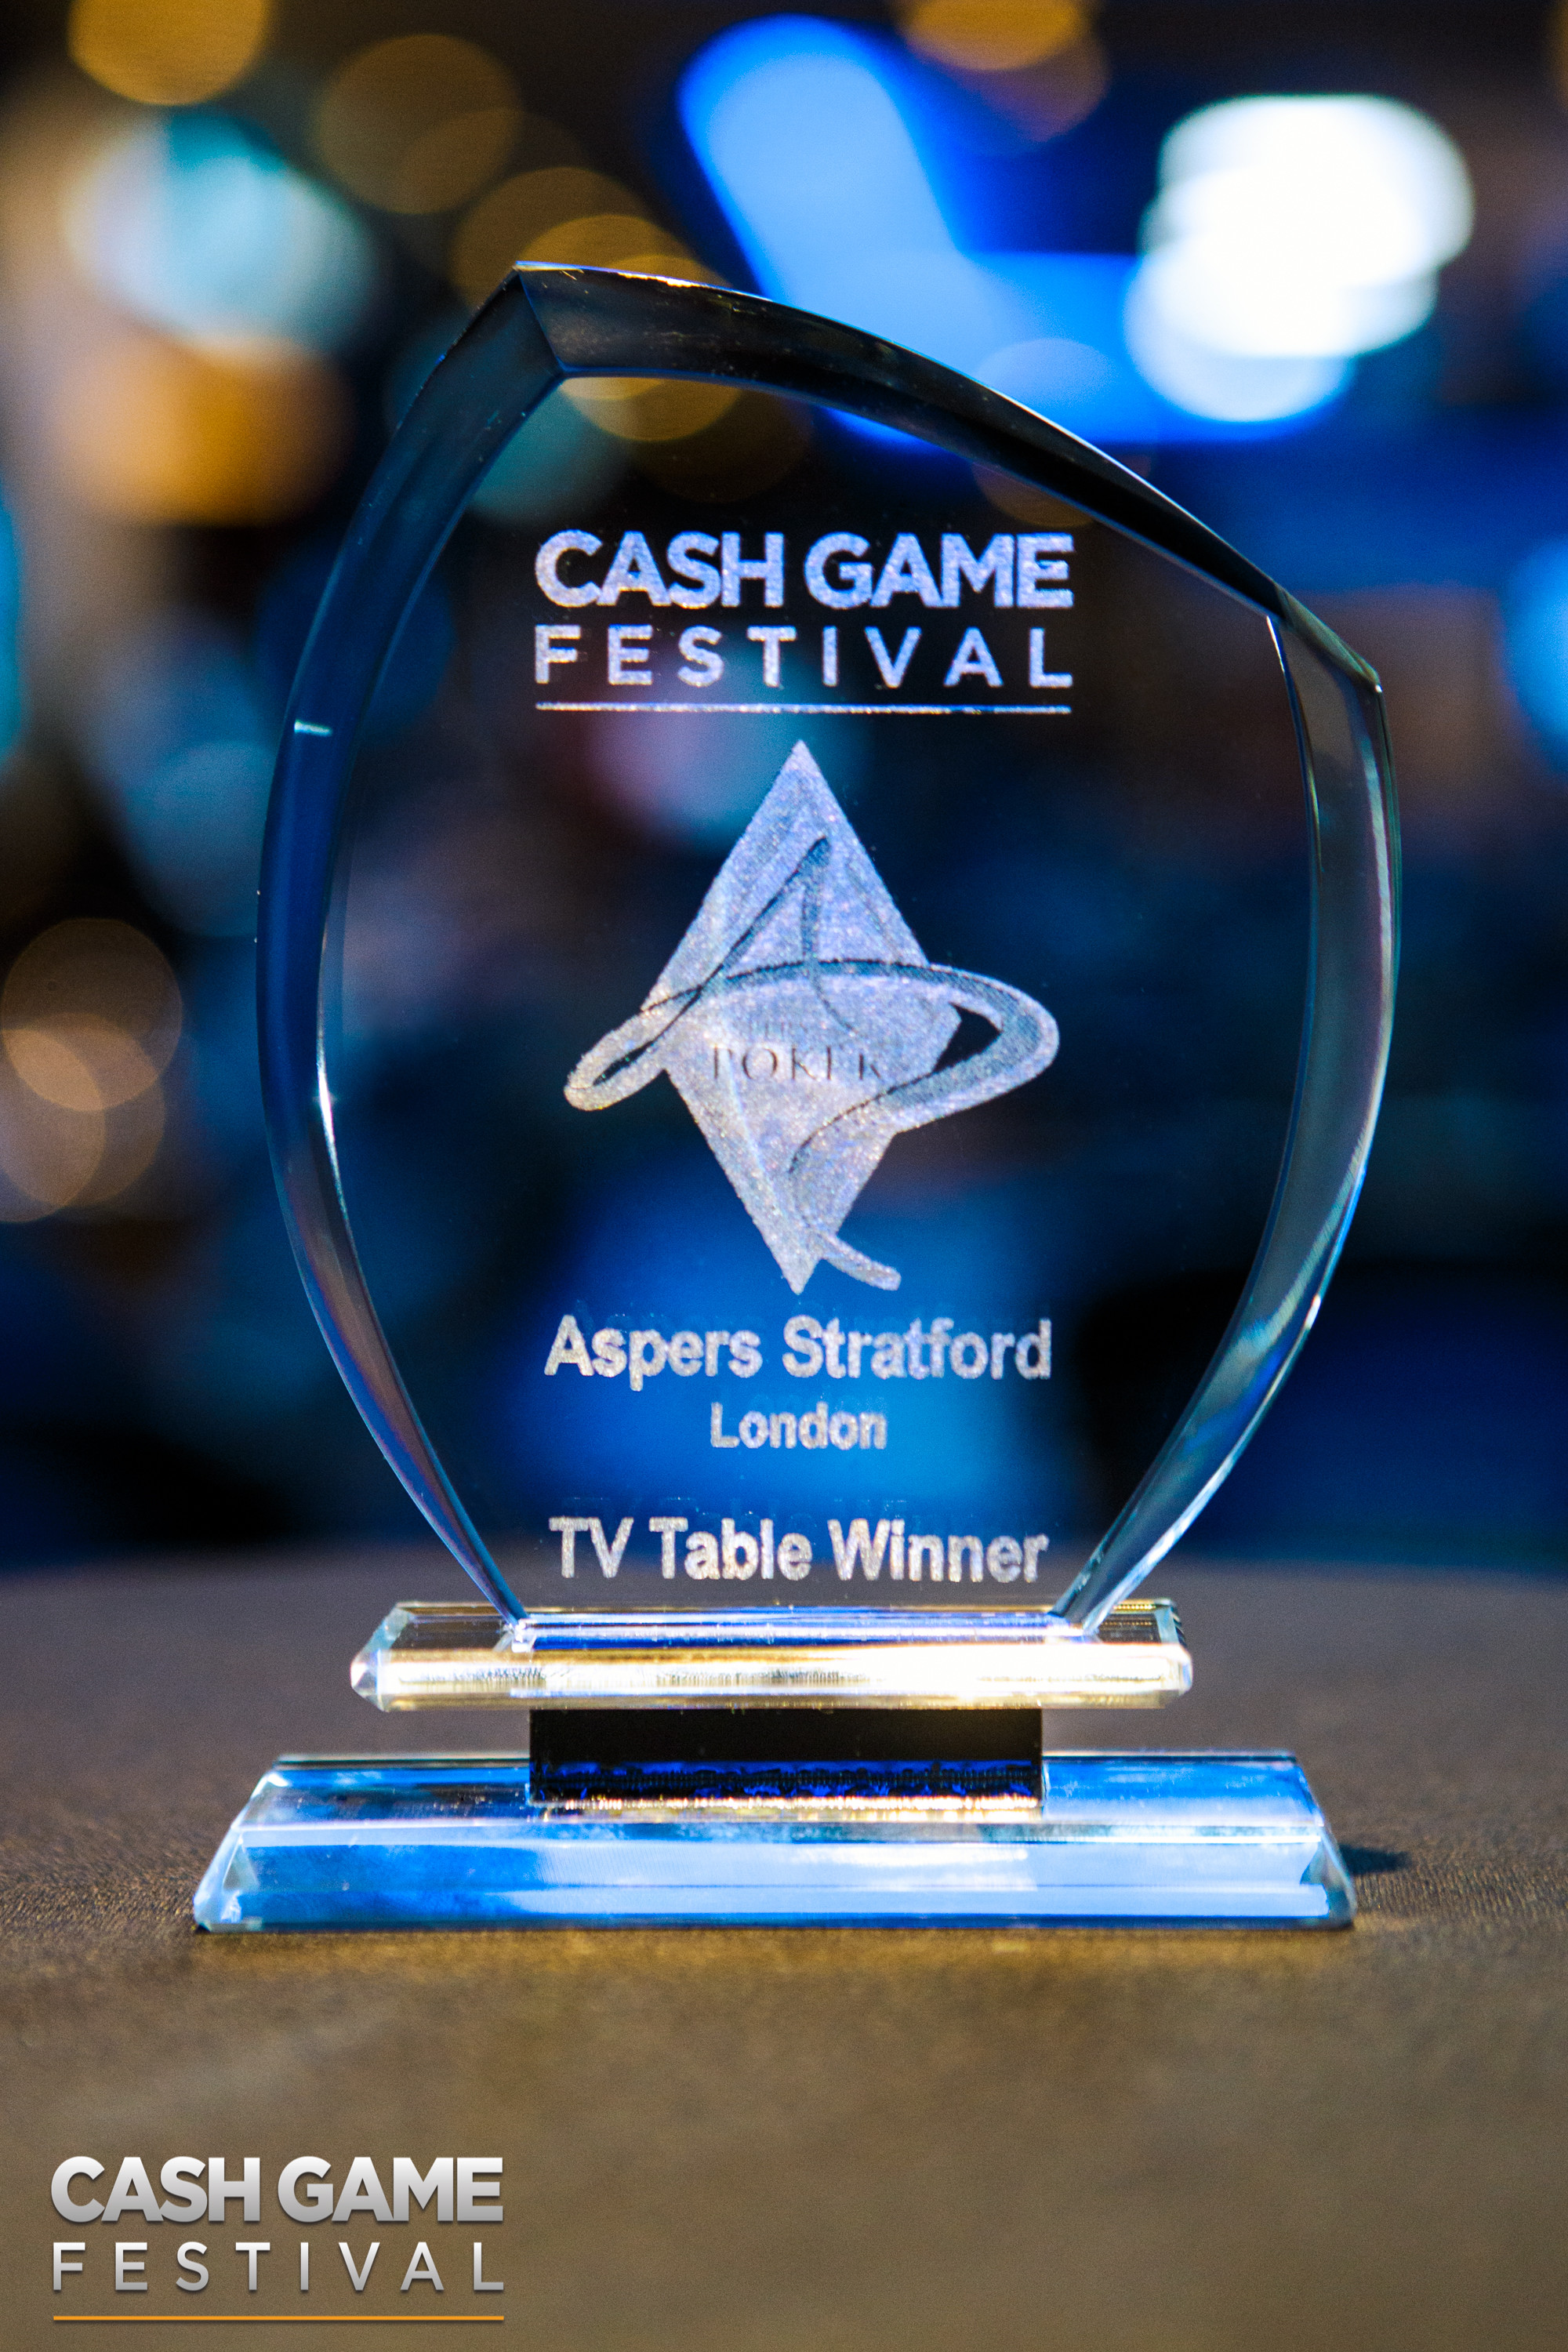 Cash Game Festival London Trophy